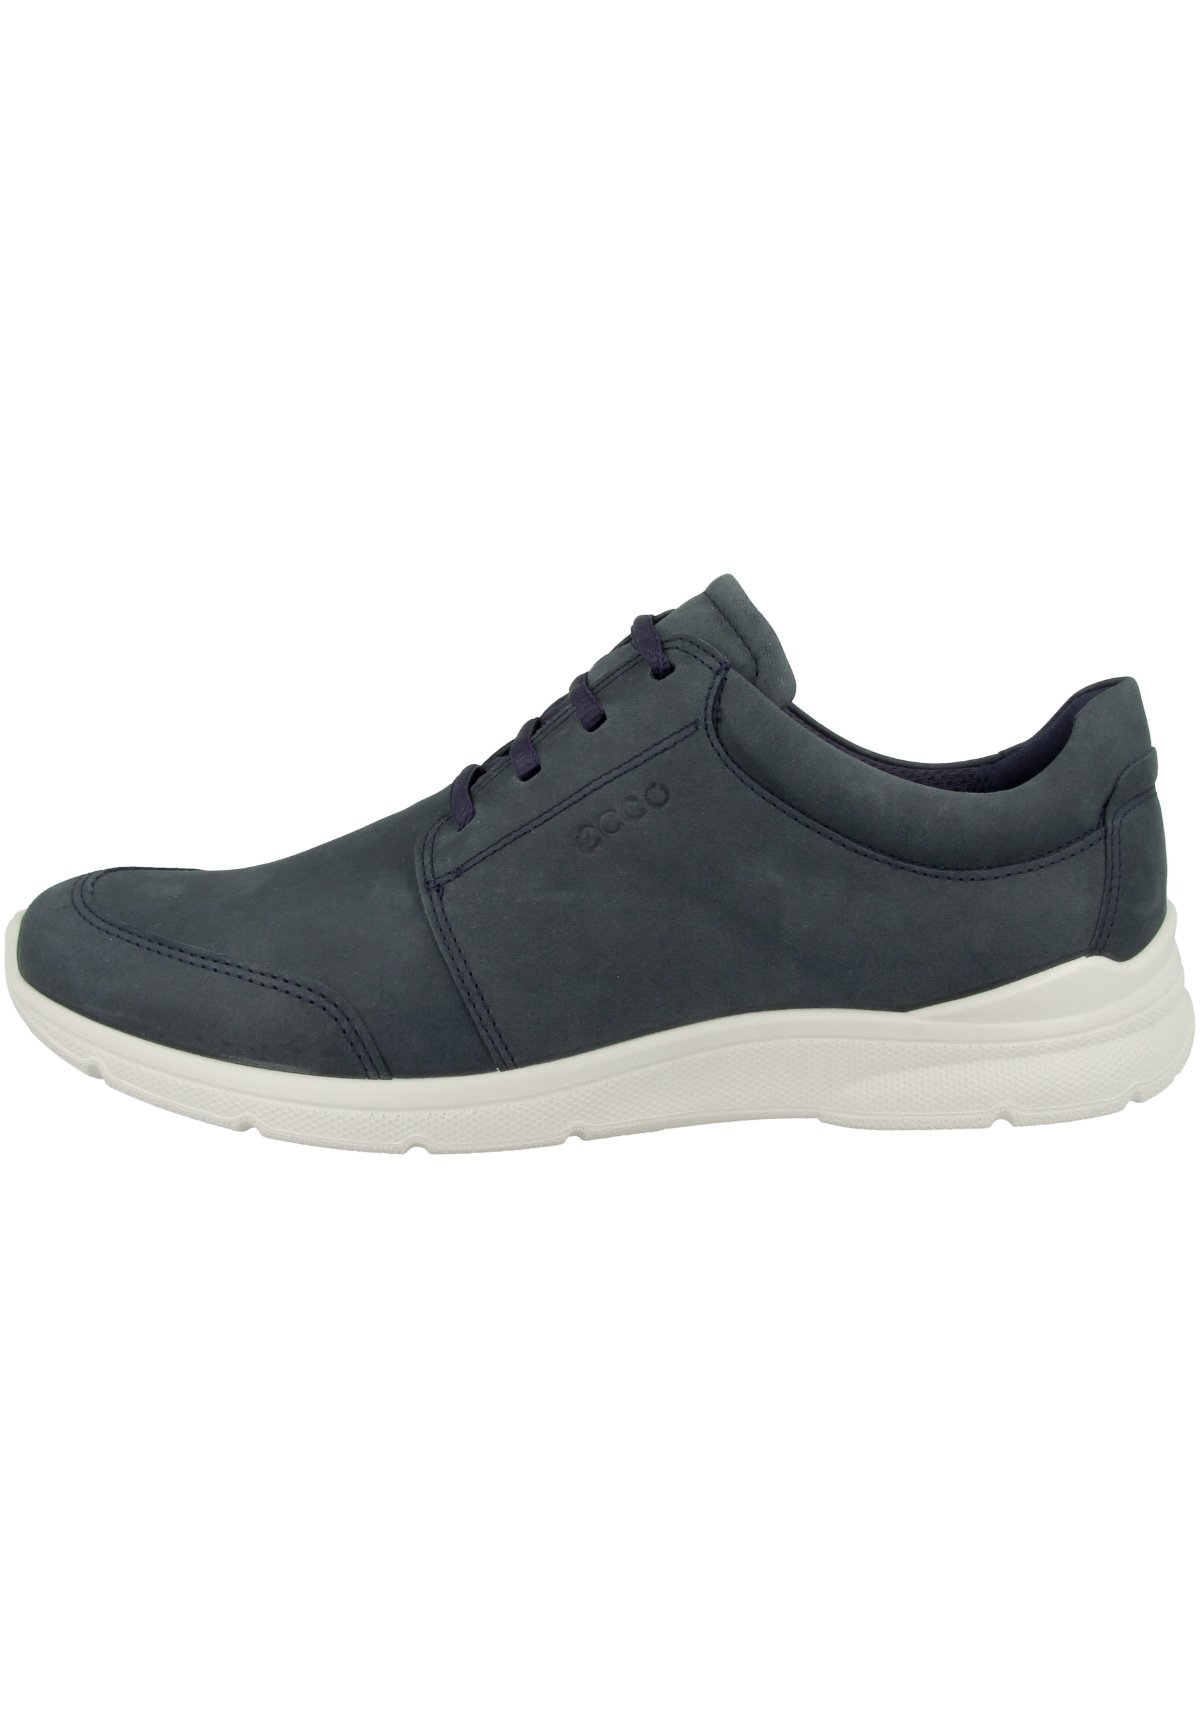 Homme IRVING - Chaussures à lacets - marine